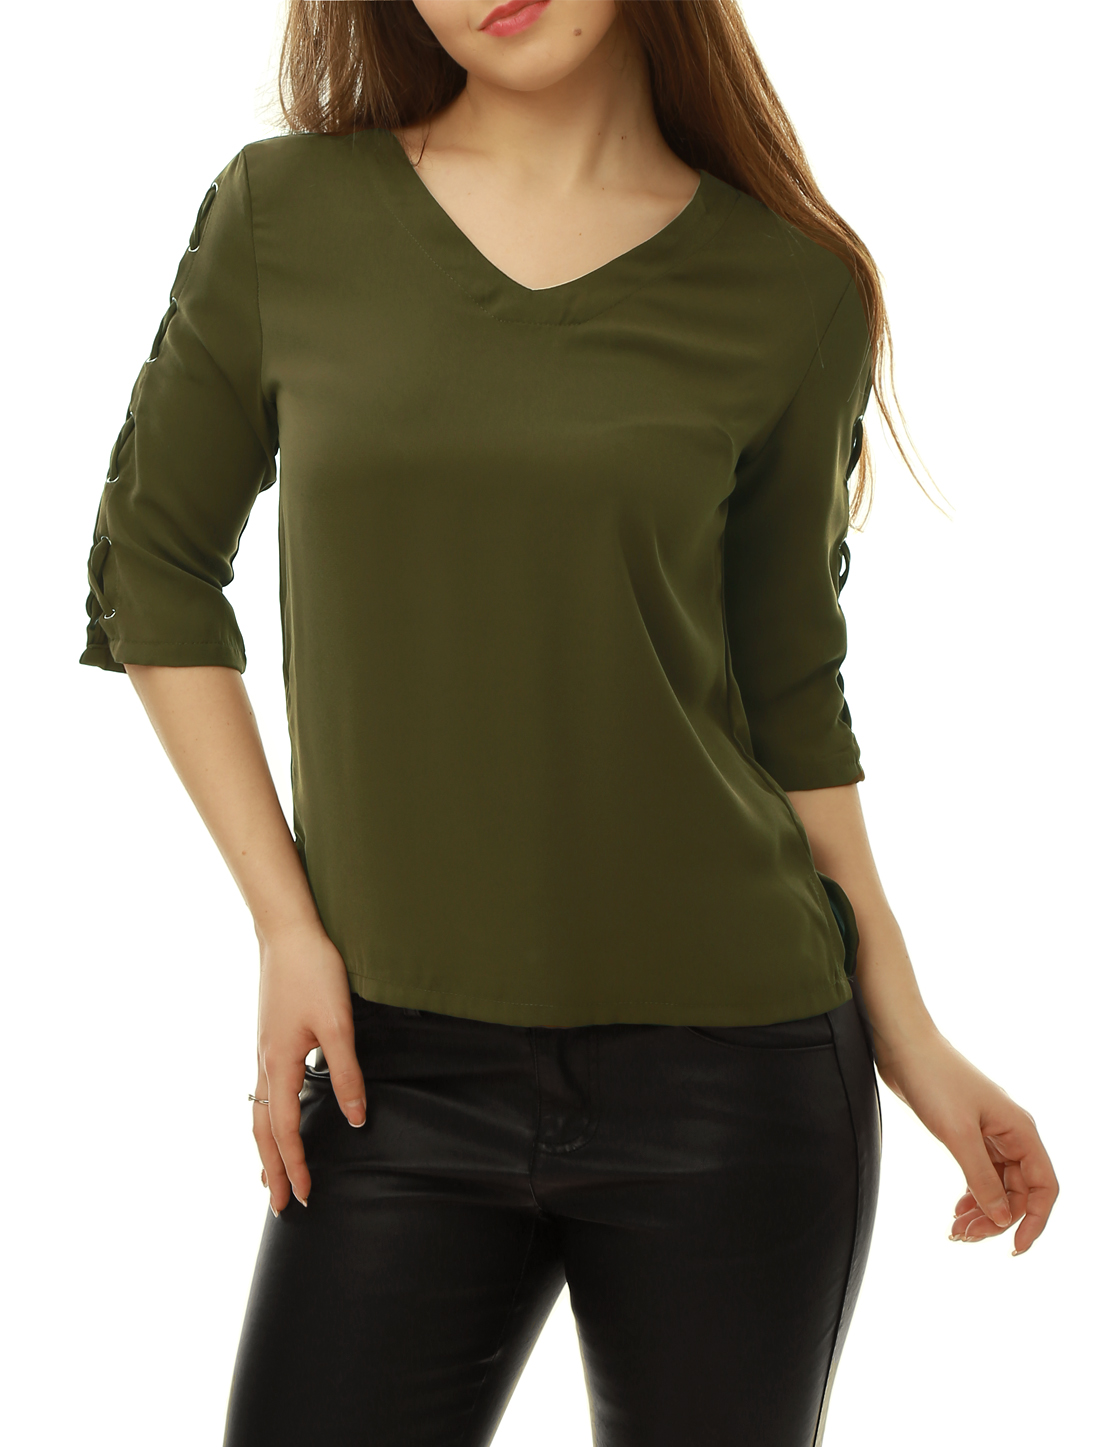 Women Three Quarter Lace Up Sleeves V Neck Side-Slit Top Green M